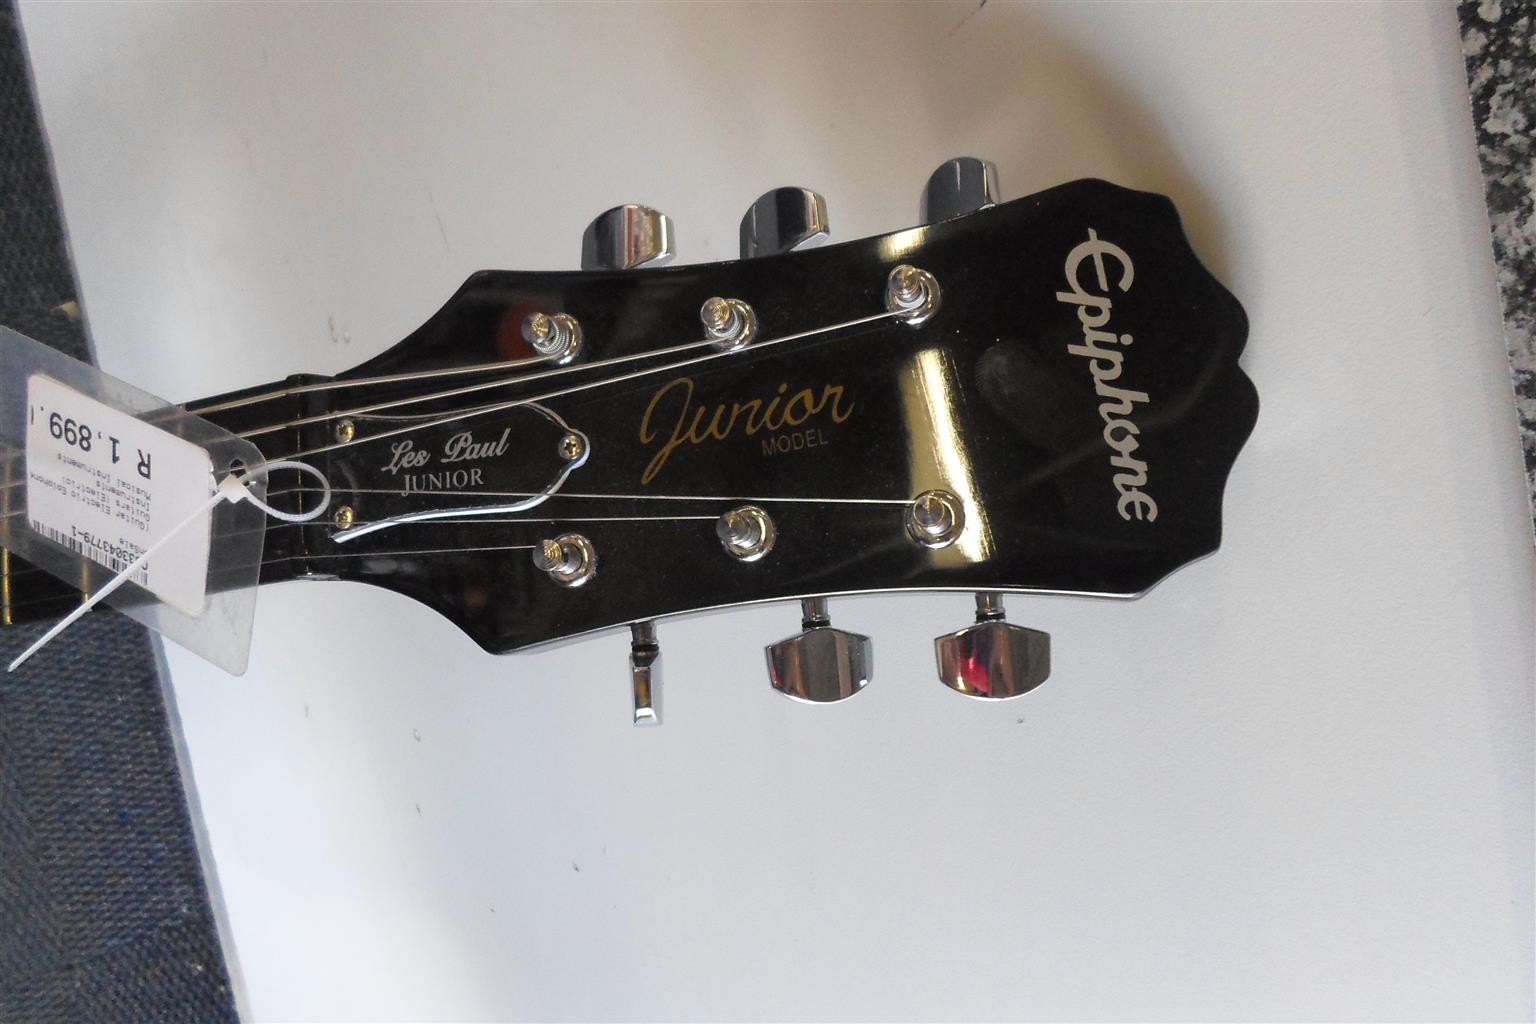 Epiphone Junior Model Electric Guitar